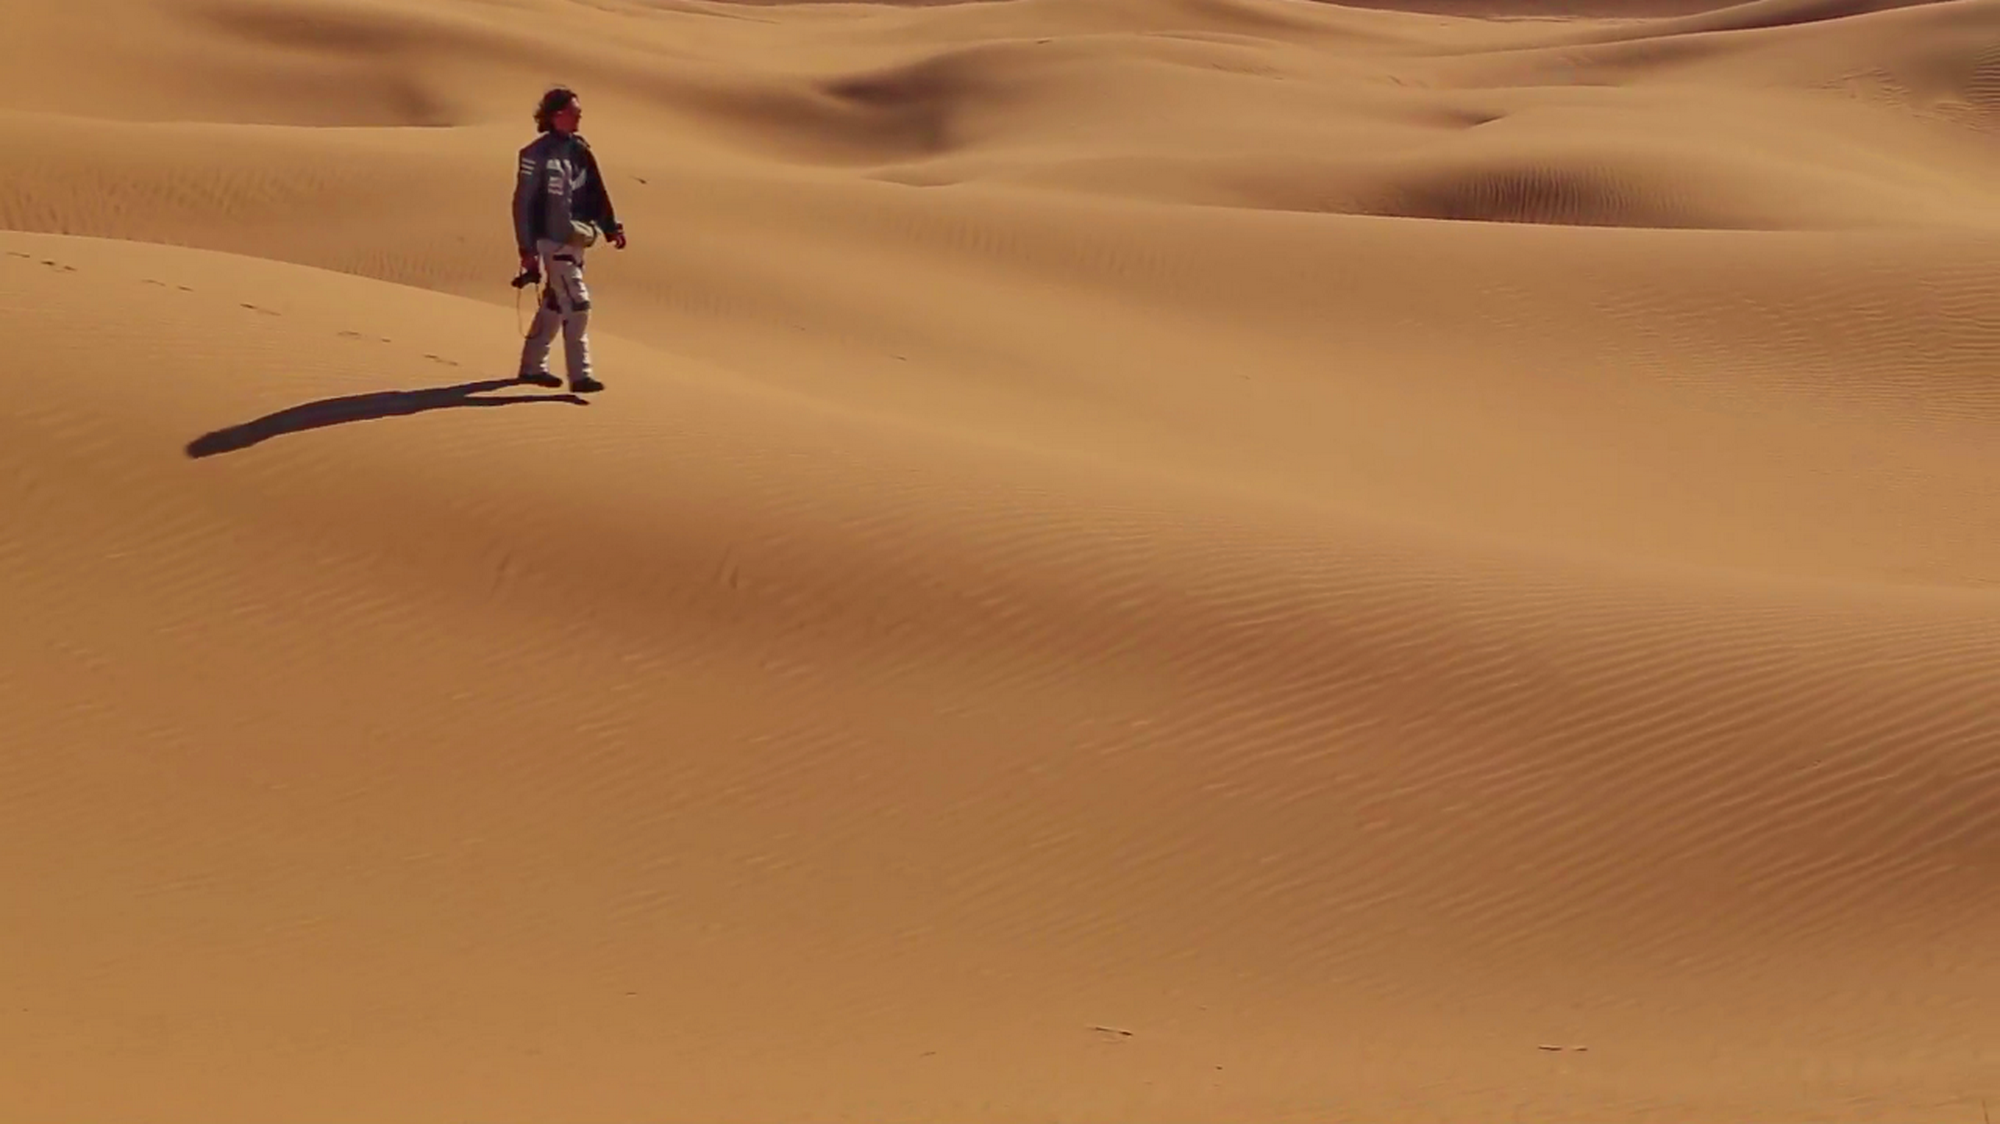 Marocco_Video Screenshot_∏ Luca Bracali